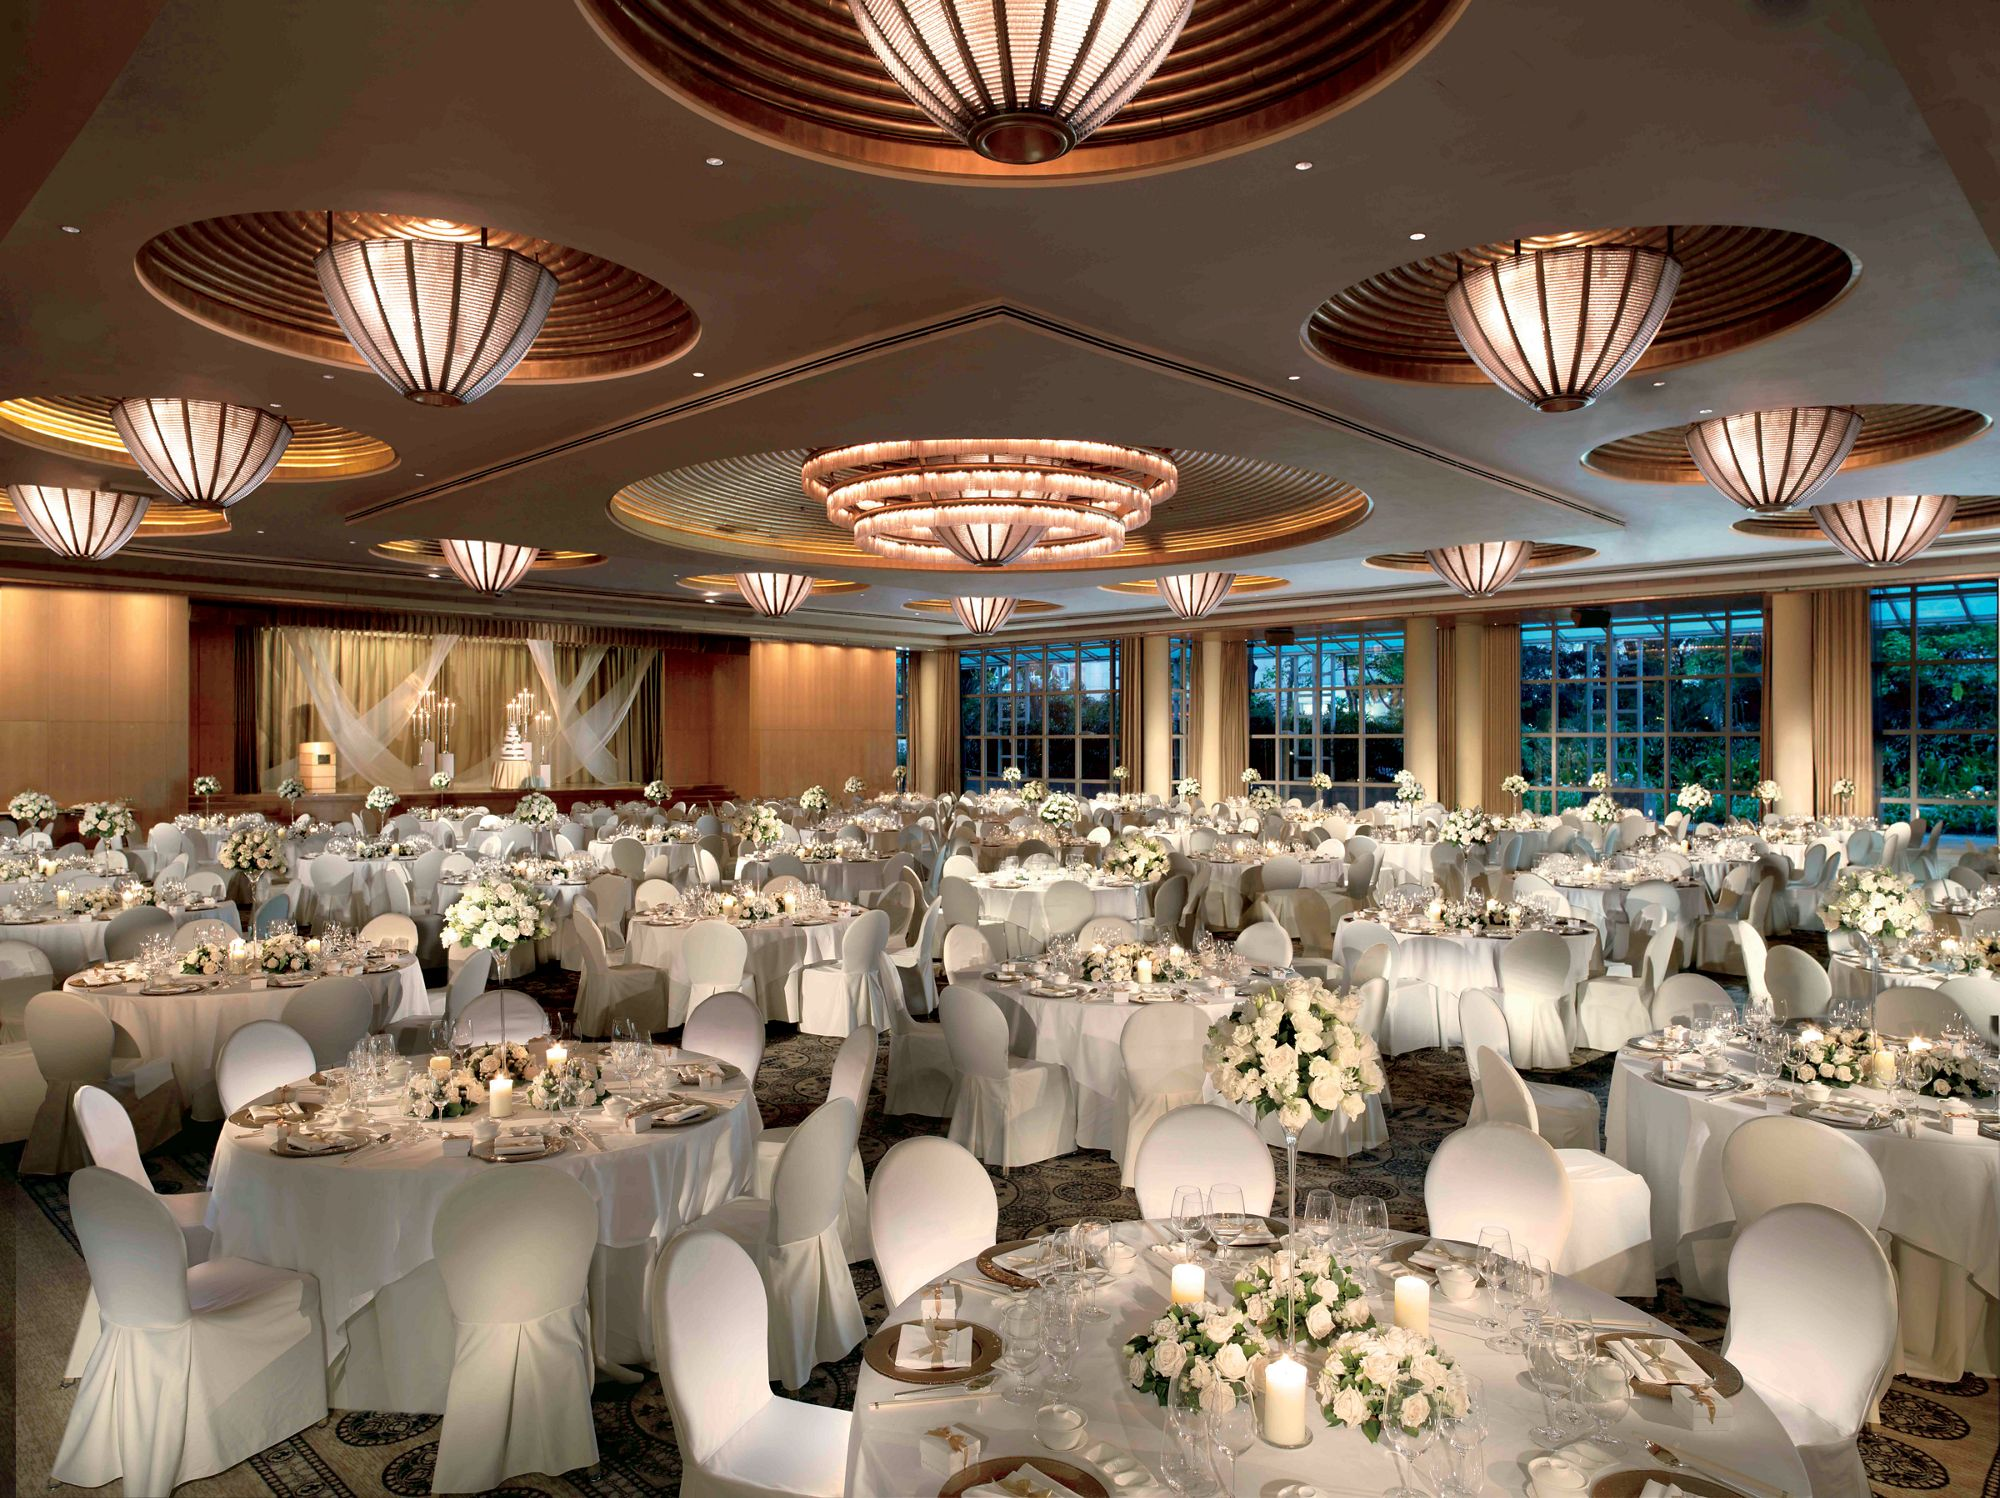 The Ritz-Carlton, Millenia Singapore Ballroom